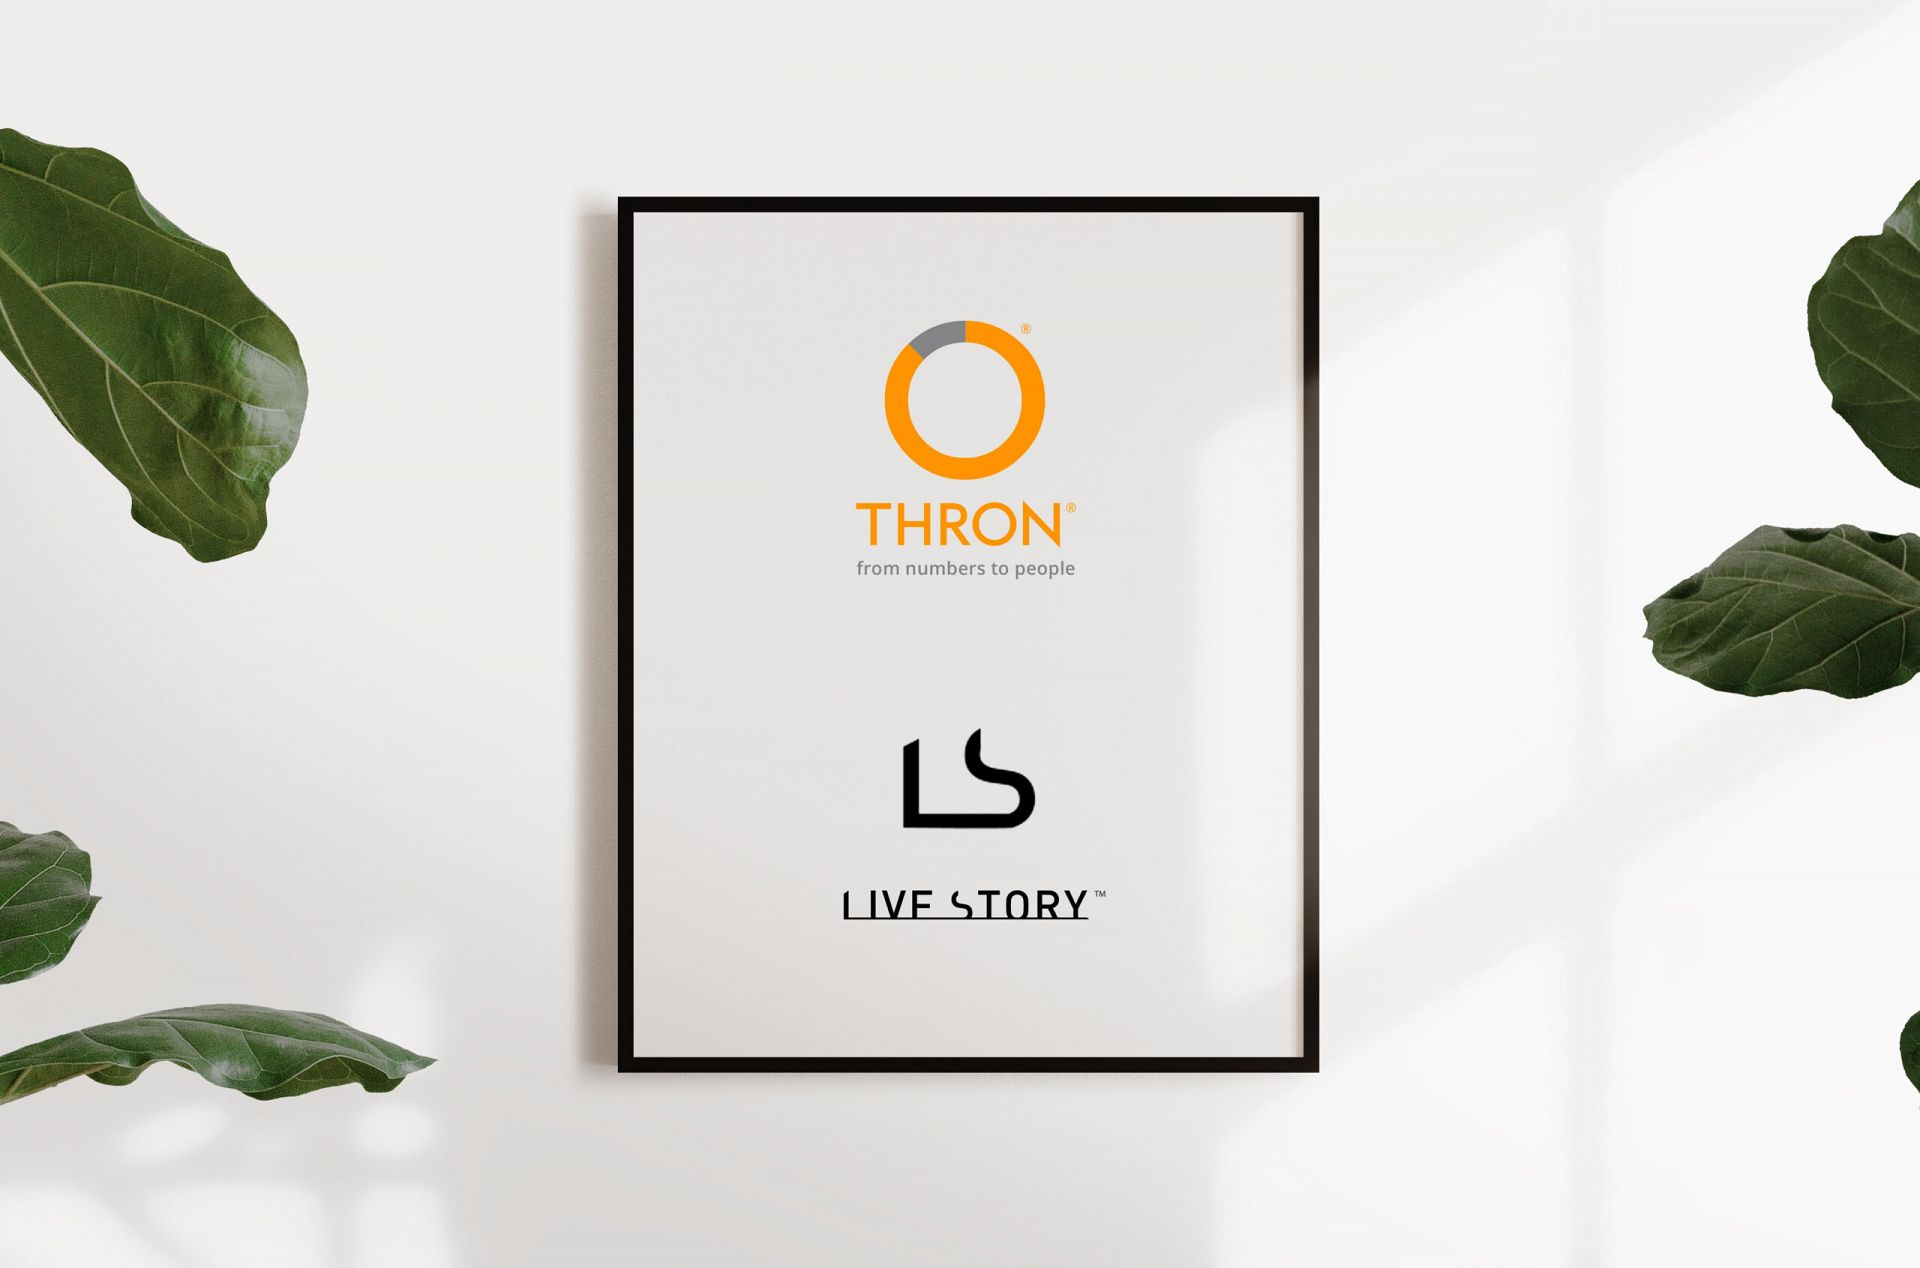 Live Story is integrated with THRON, the intelligent Digital Asset Manager platform